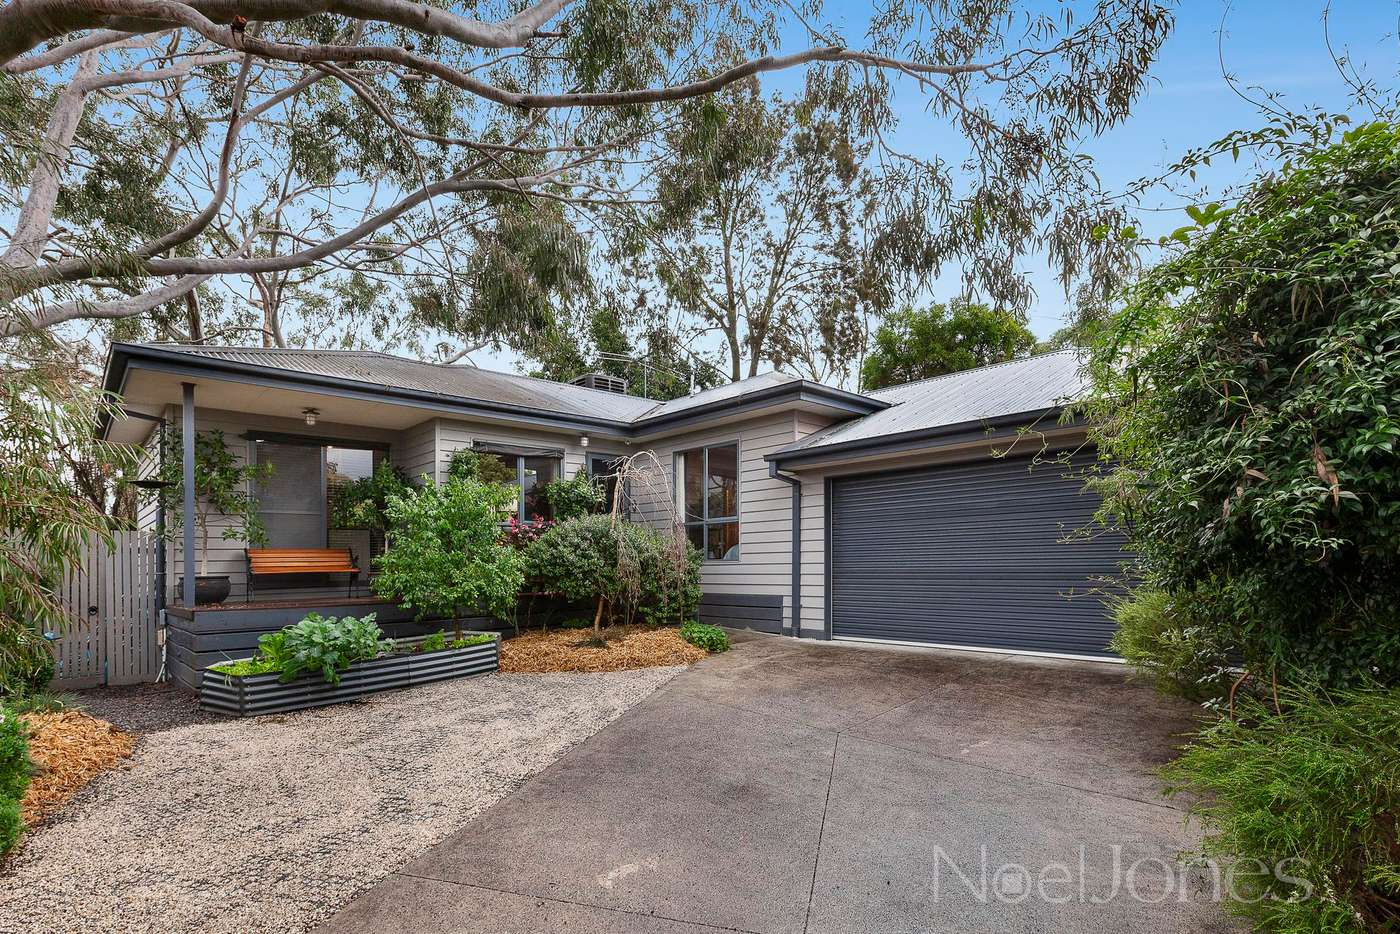 Main view of Homely house listing, 1A Mulduri Crescent, Croydon South VIC 3136